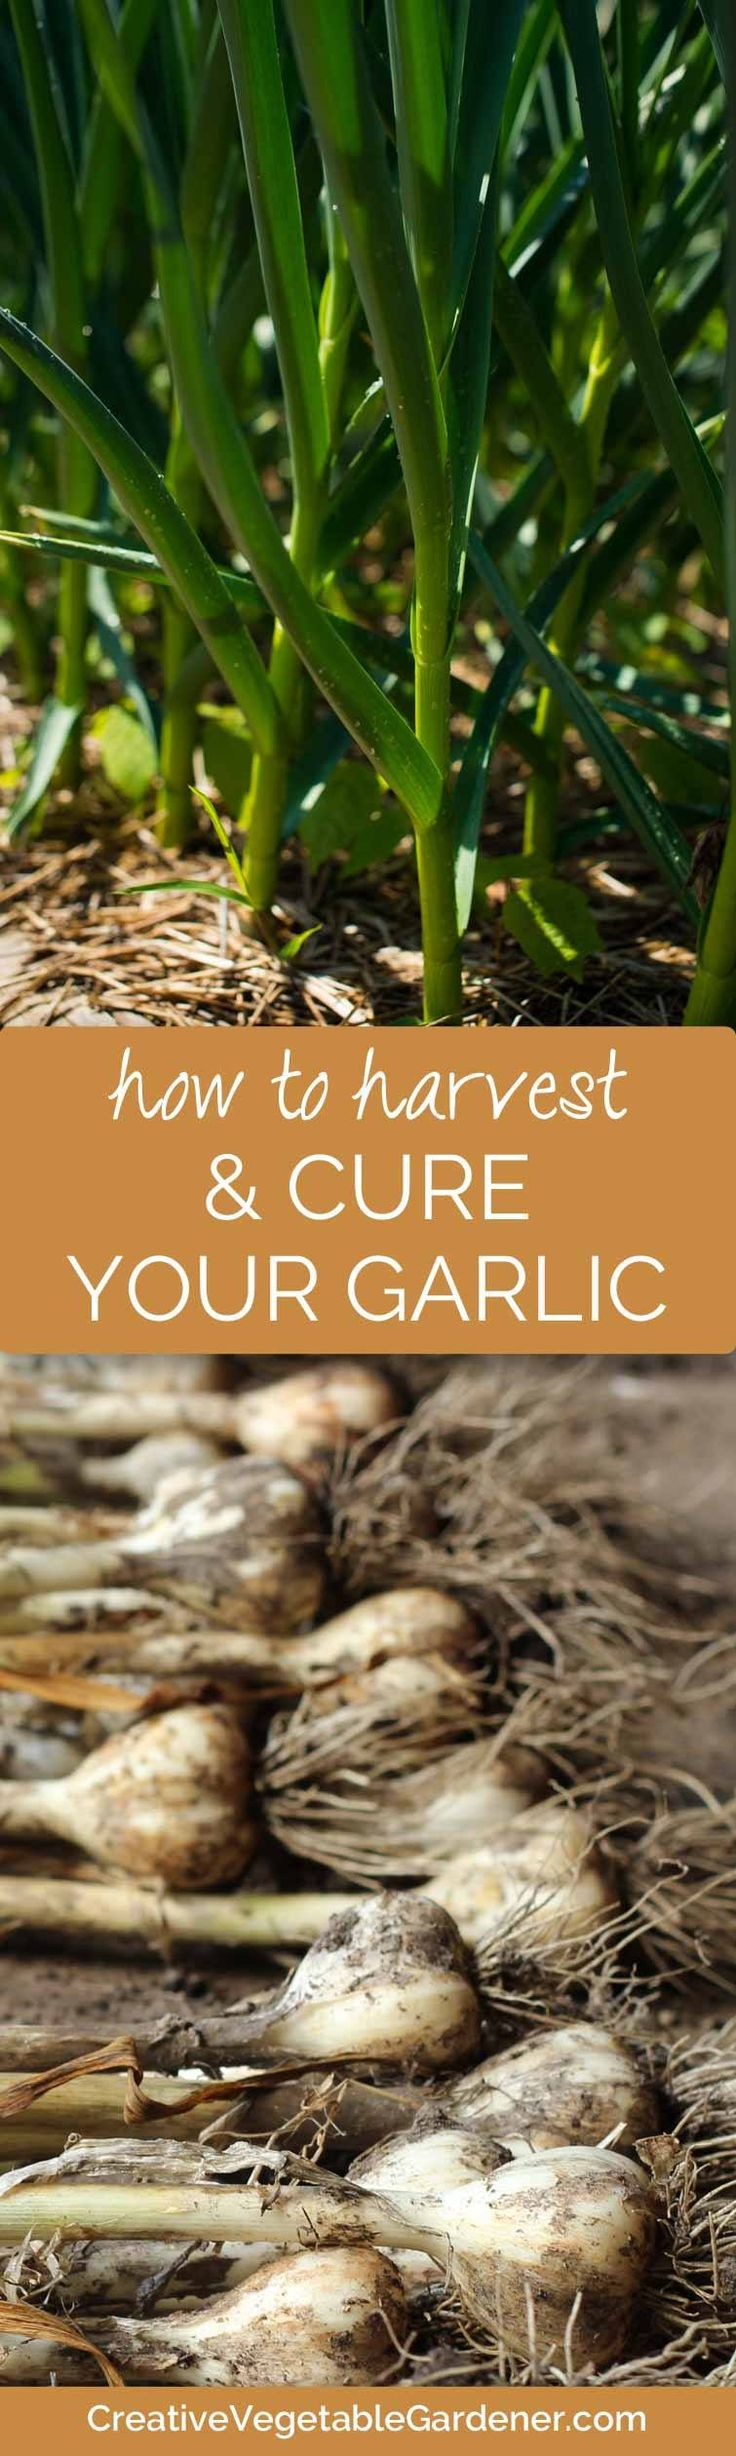 The right time to harvest your garlic & how to cure it to make sure it lasts all winter.